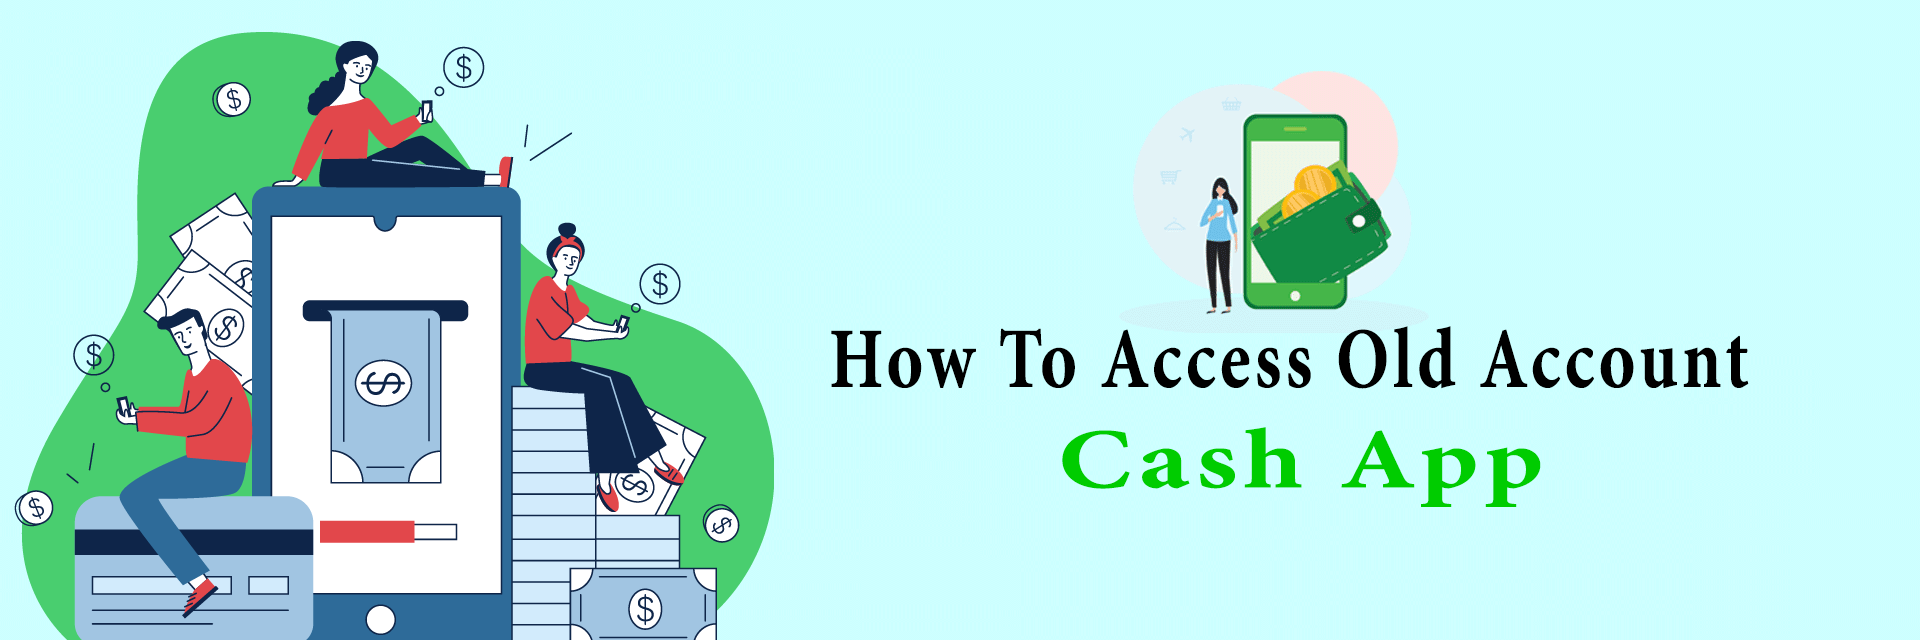 Access Old Cash App Account,